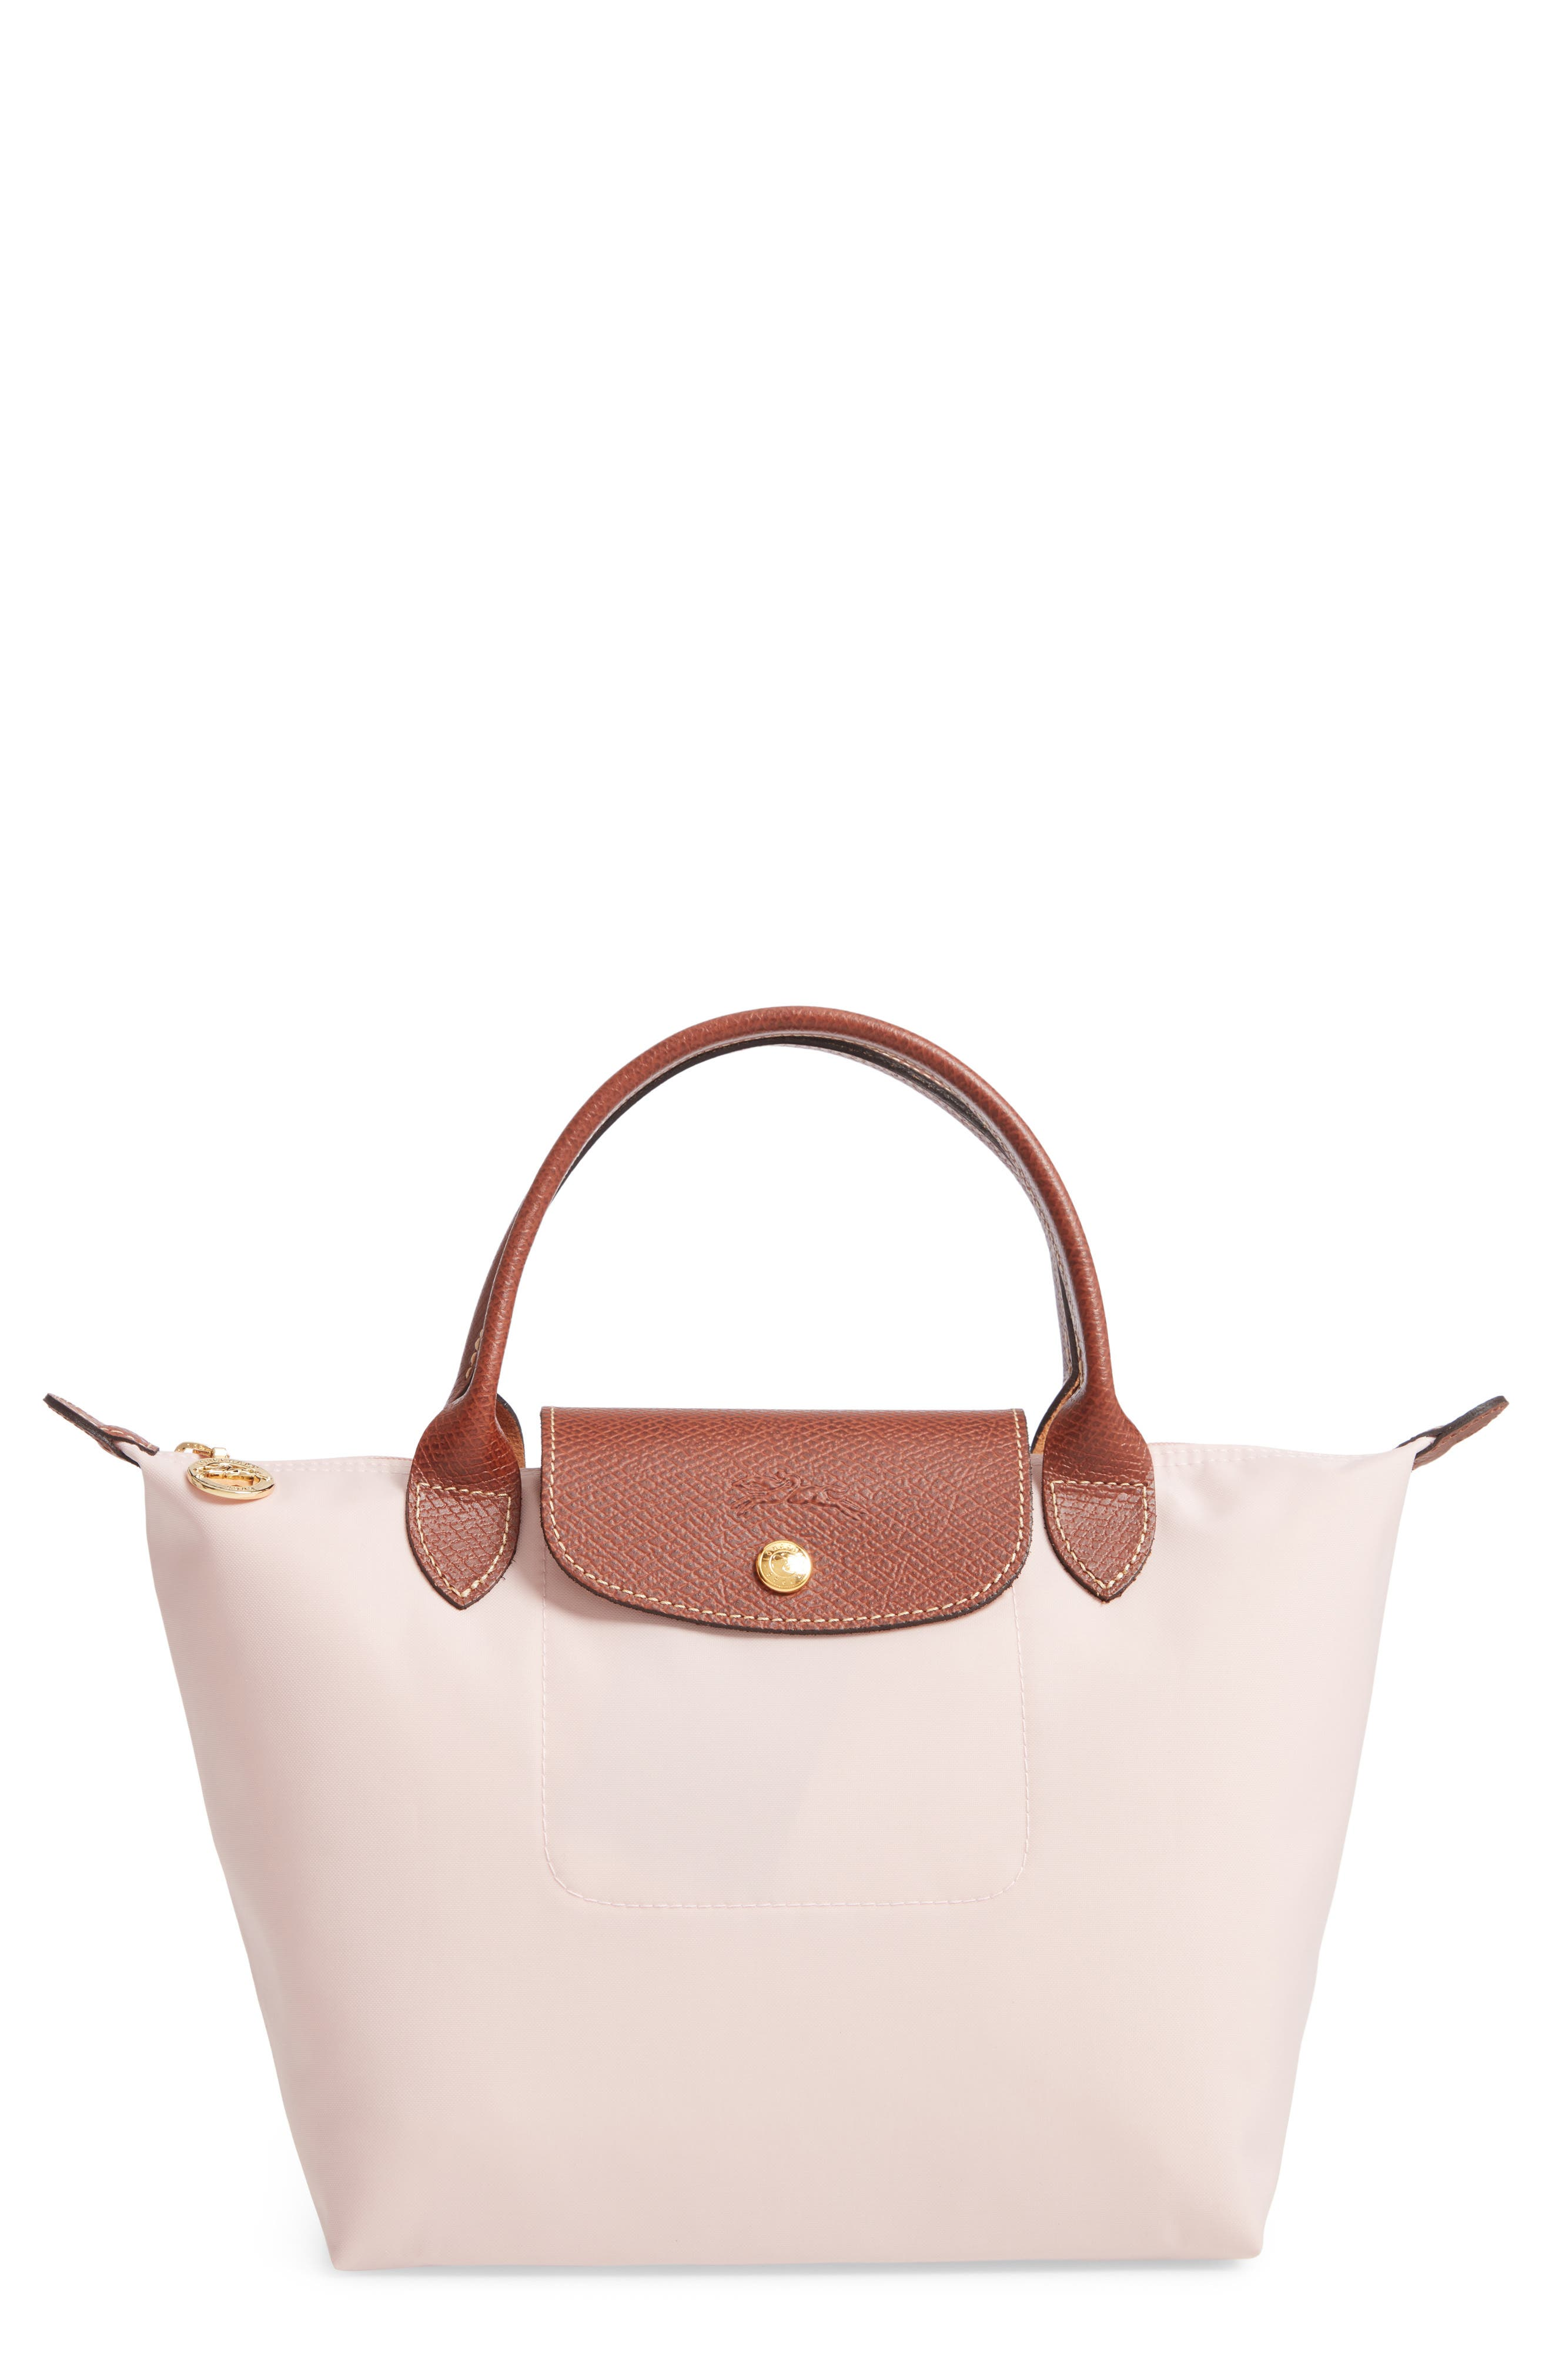 'Small Le Pliage' Top Handle Tote,                             Main thumbnail 1, color,                             PINK ICE